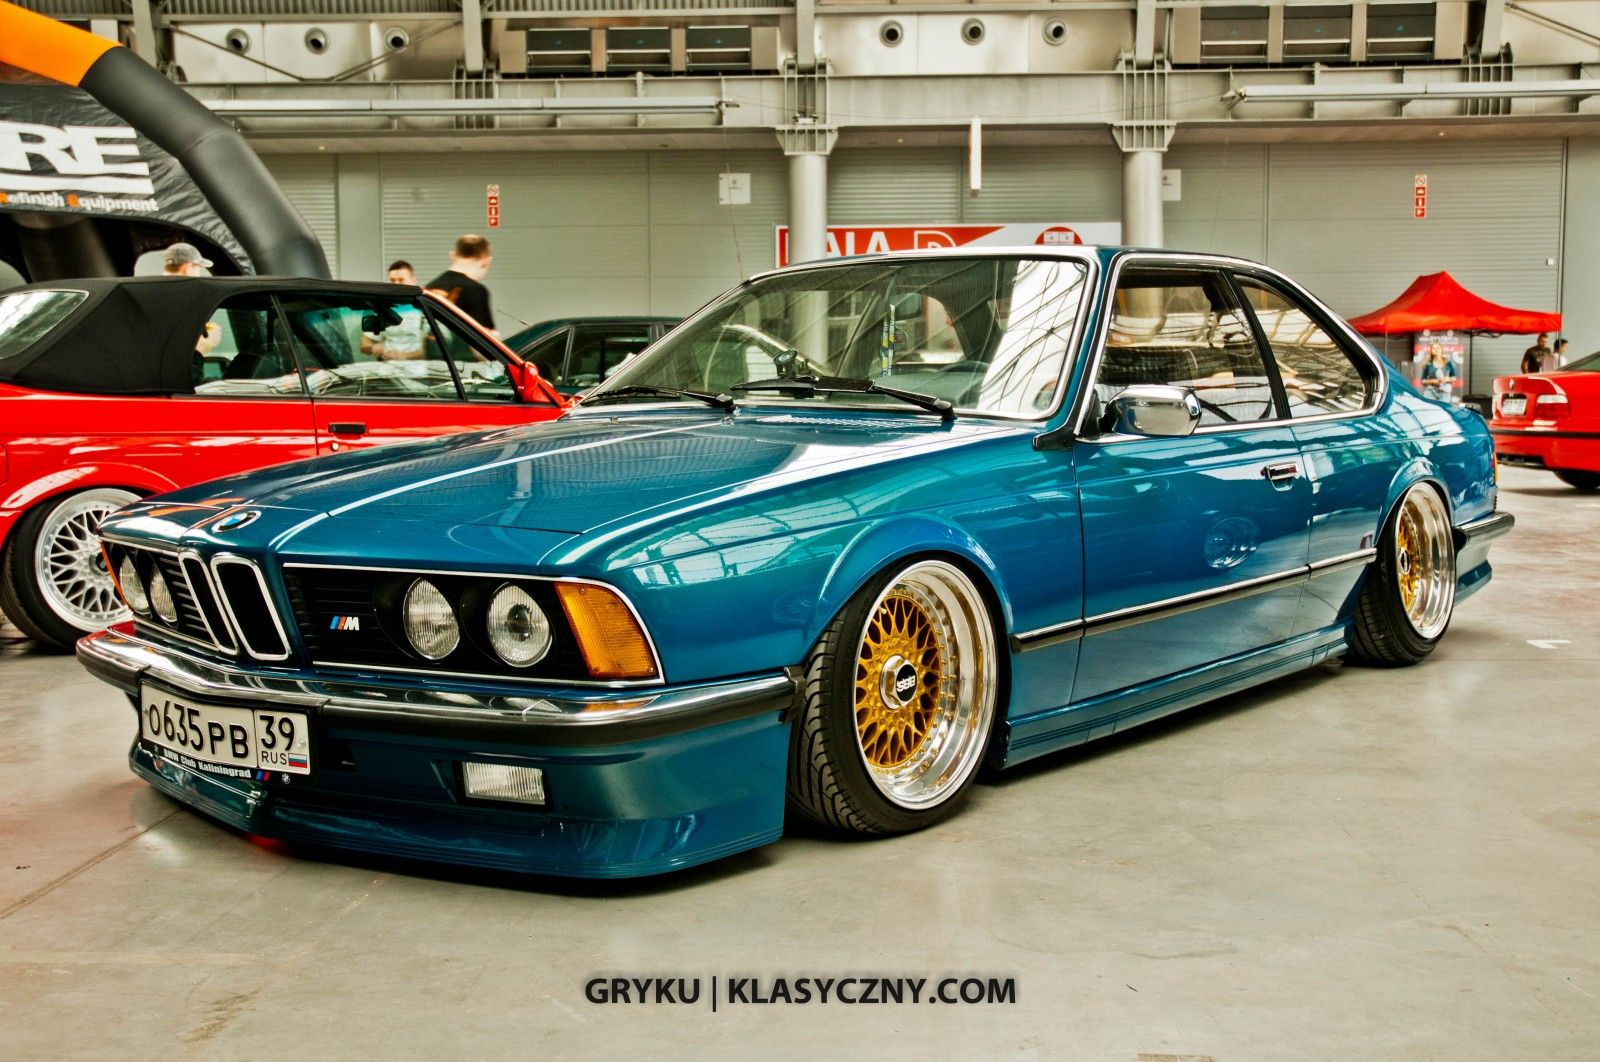 classy beemer cars bagged stanced pinterest classy bmw and cars. Black Bedroom Furniture Sets. Home Design Ideas